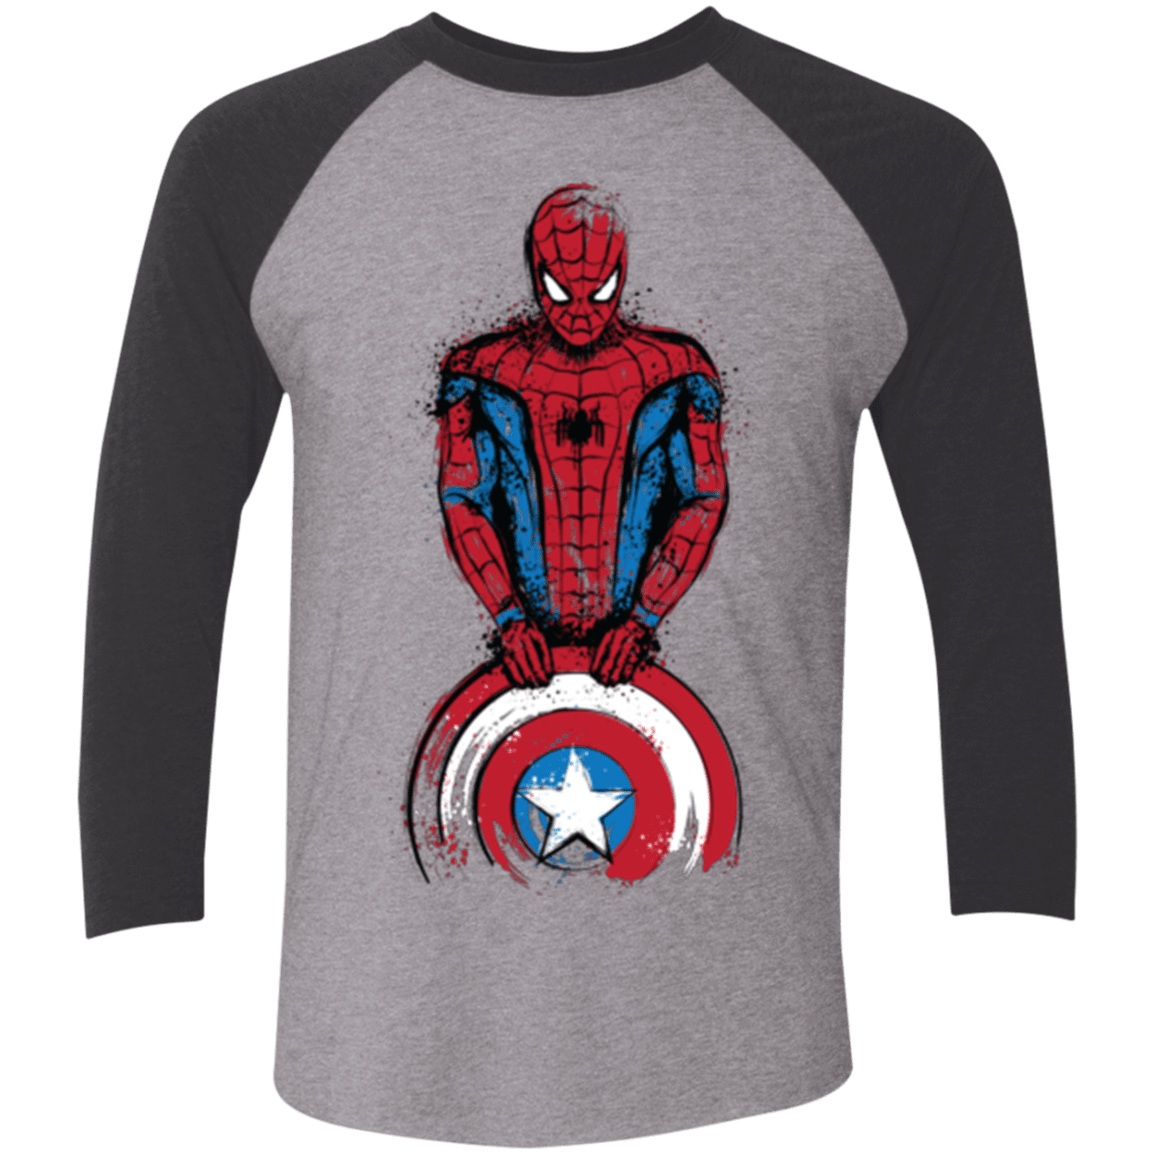 T-Shirts Premium Heather/ Vintage Black / X-Small The Spider is Coming Men's Triblend 3/4 Sleeve